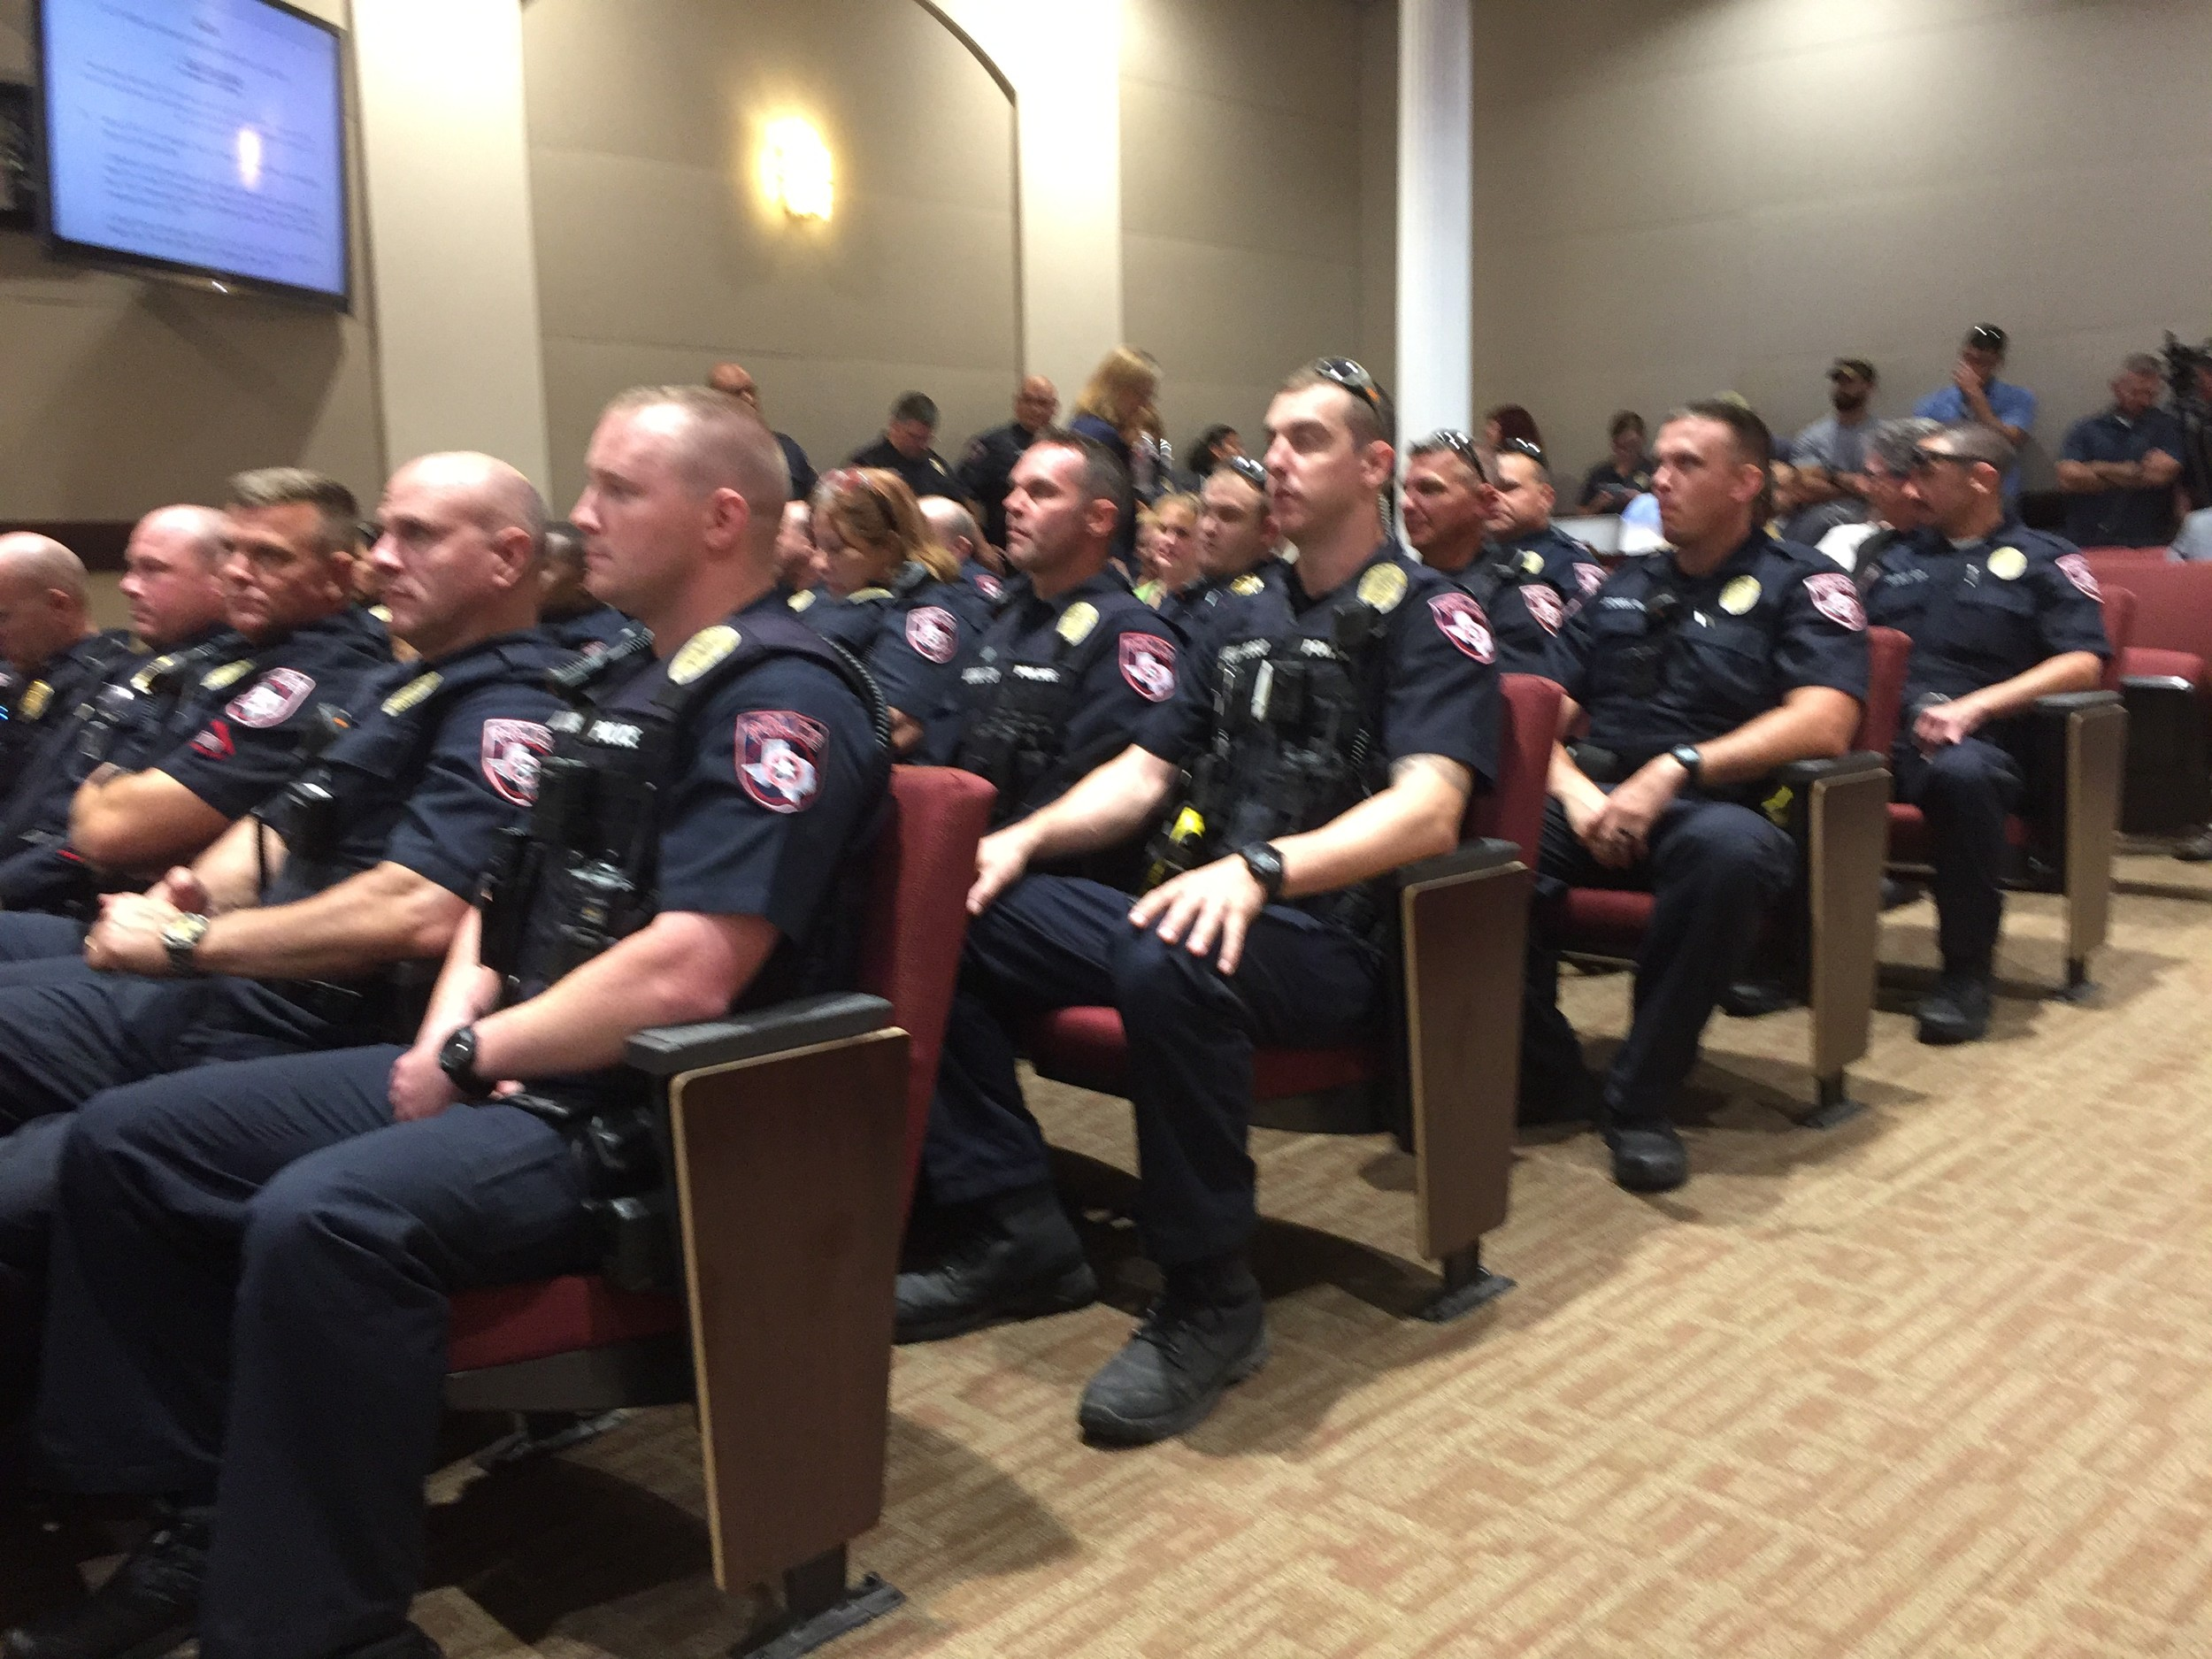 More than 50 Cedar Park police officers attended Thursday night's Cedar Park City Council meeting where the main item of discussion was the police department's investigation into the 2014 Greg Kelley case for the abuse of a child. That conviction is under review and the city council Thursday also ordered an independent review of the police department's actions in the case.